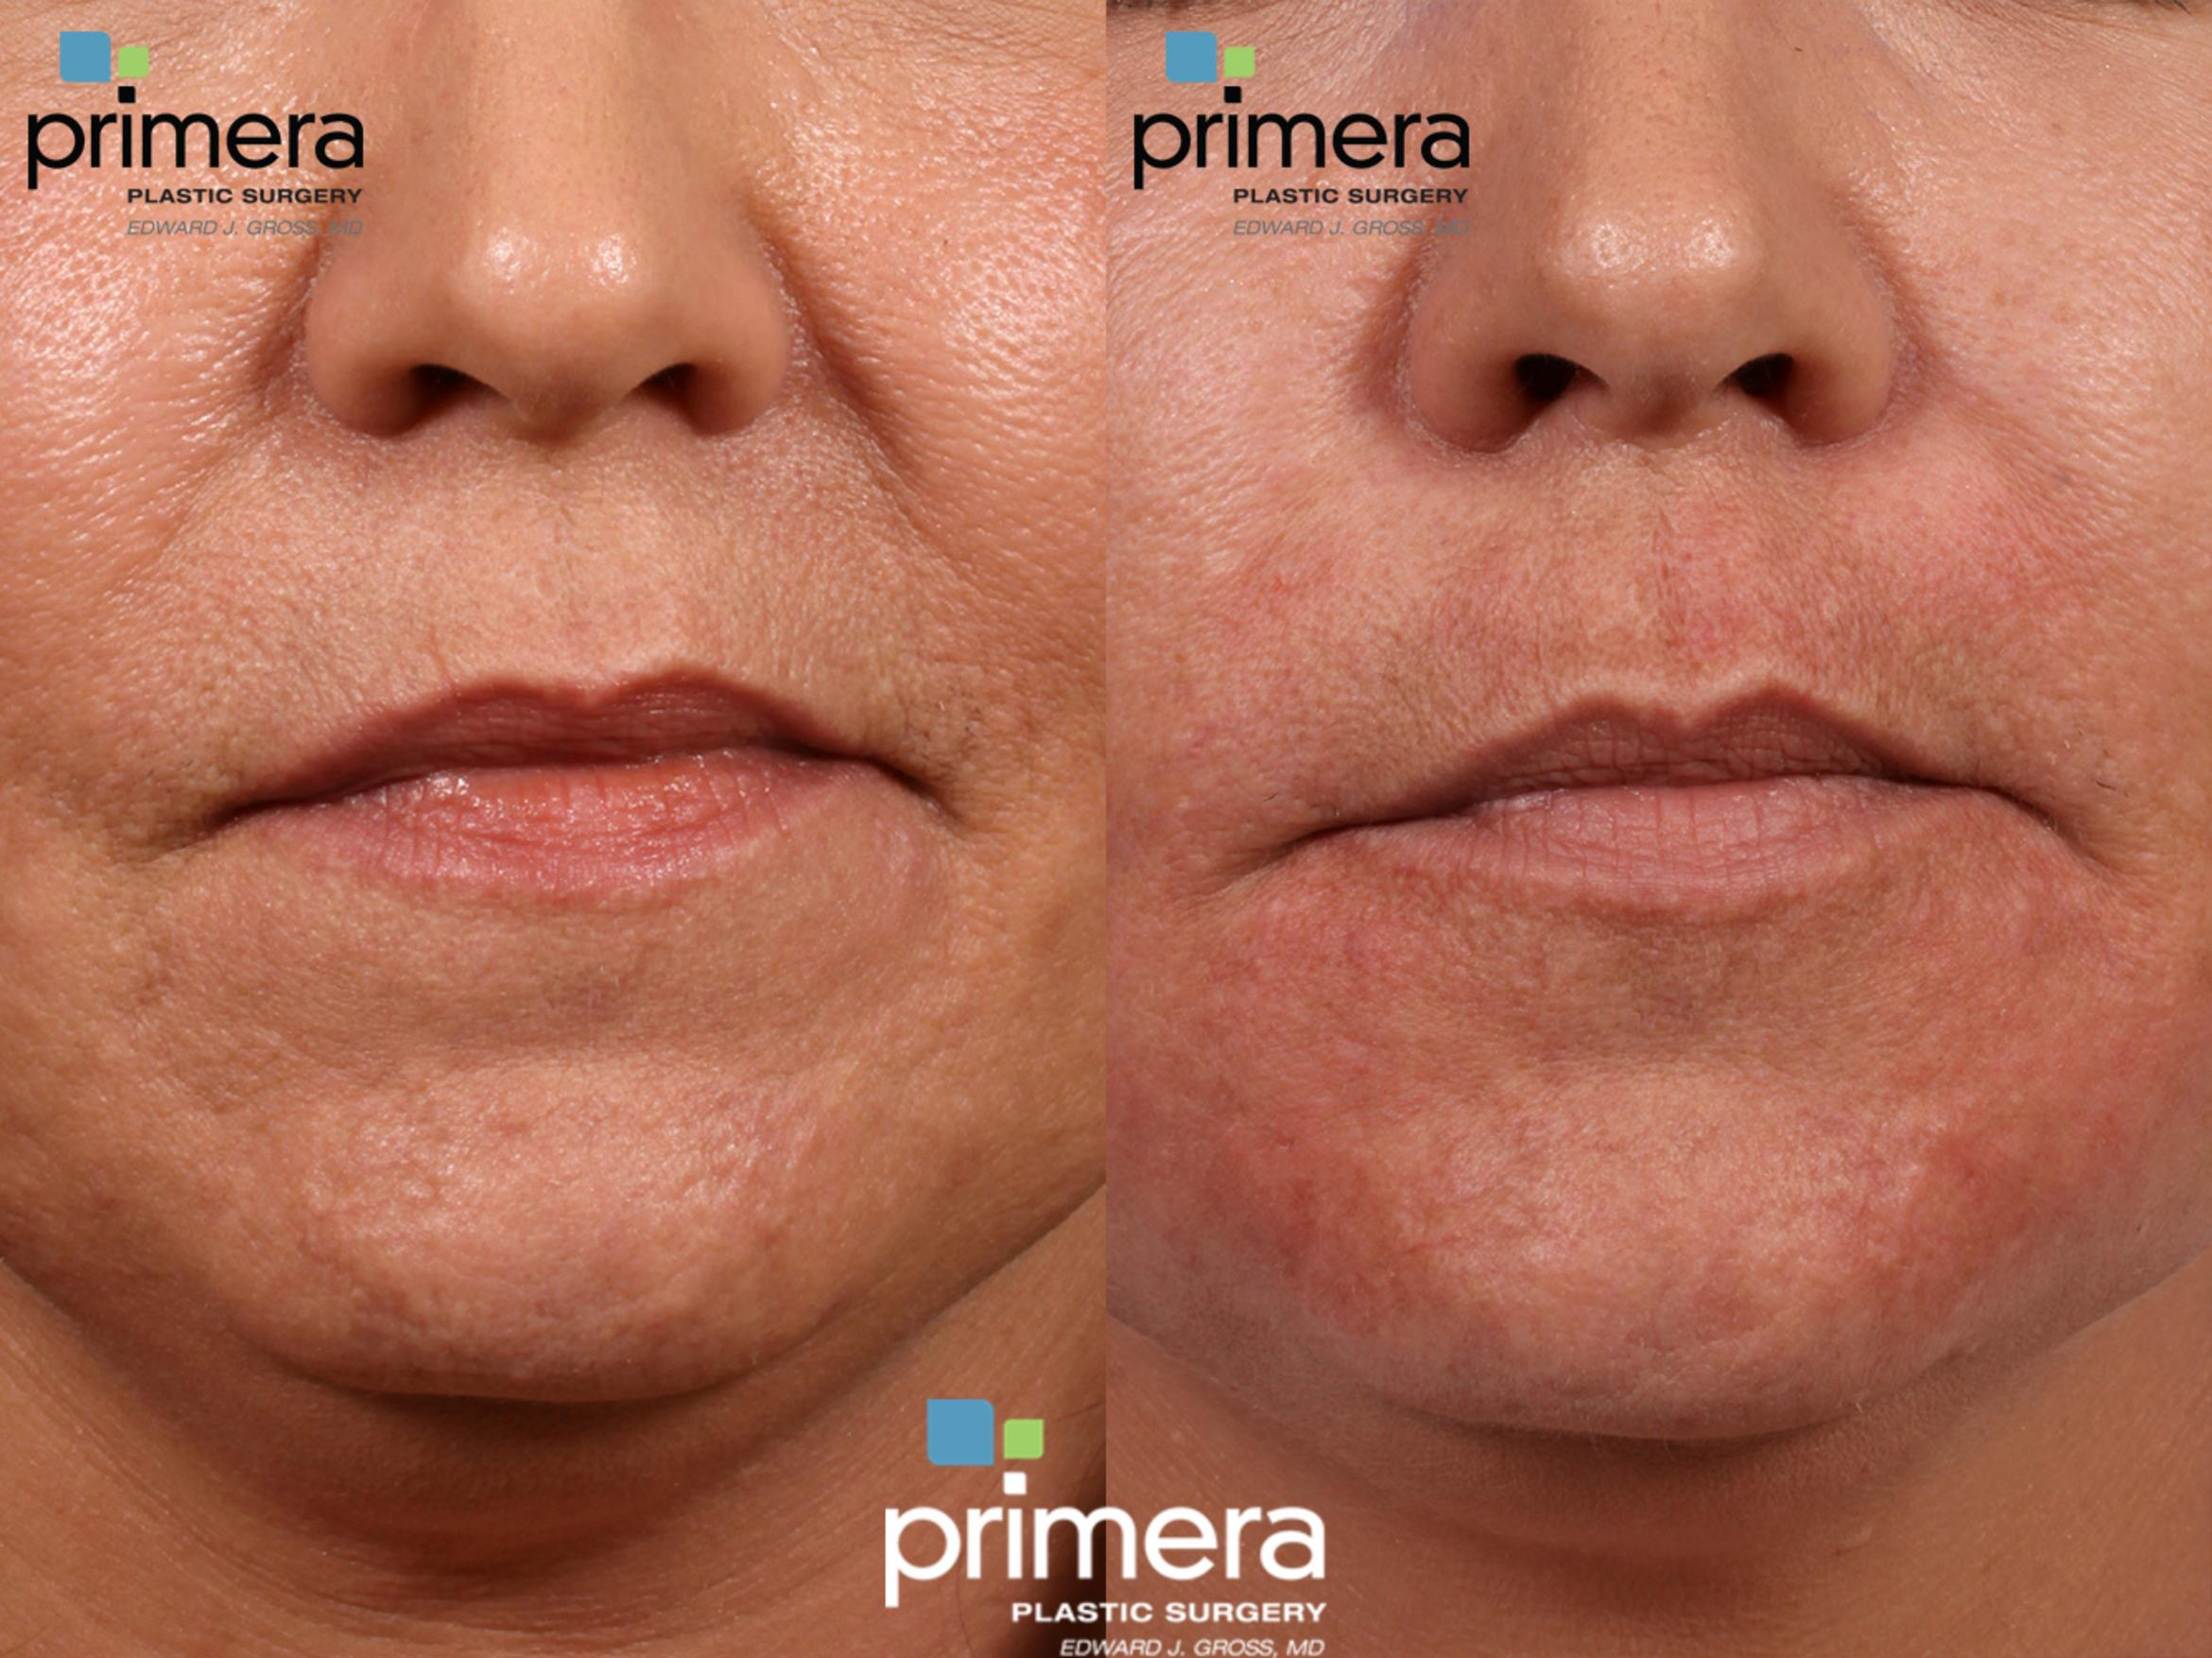 Radiesse® Before & After Photo | Orlando, Florida | Primera Plastic Surgery